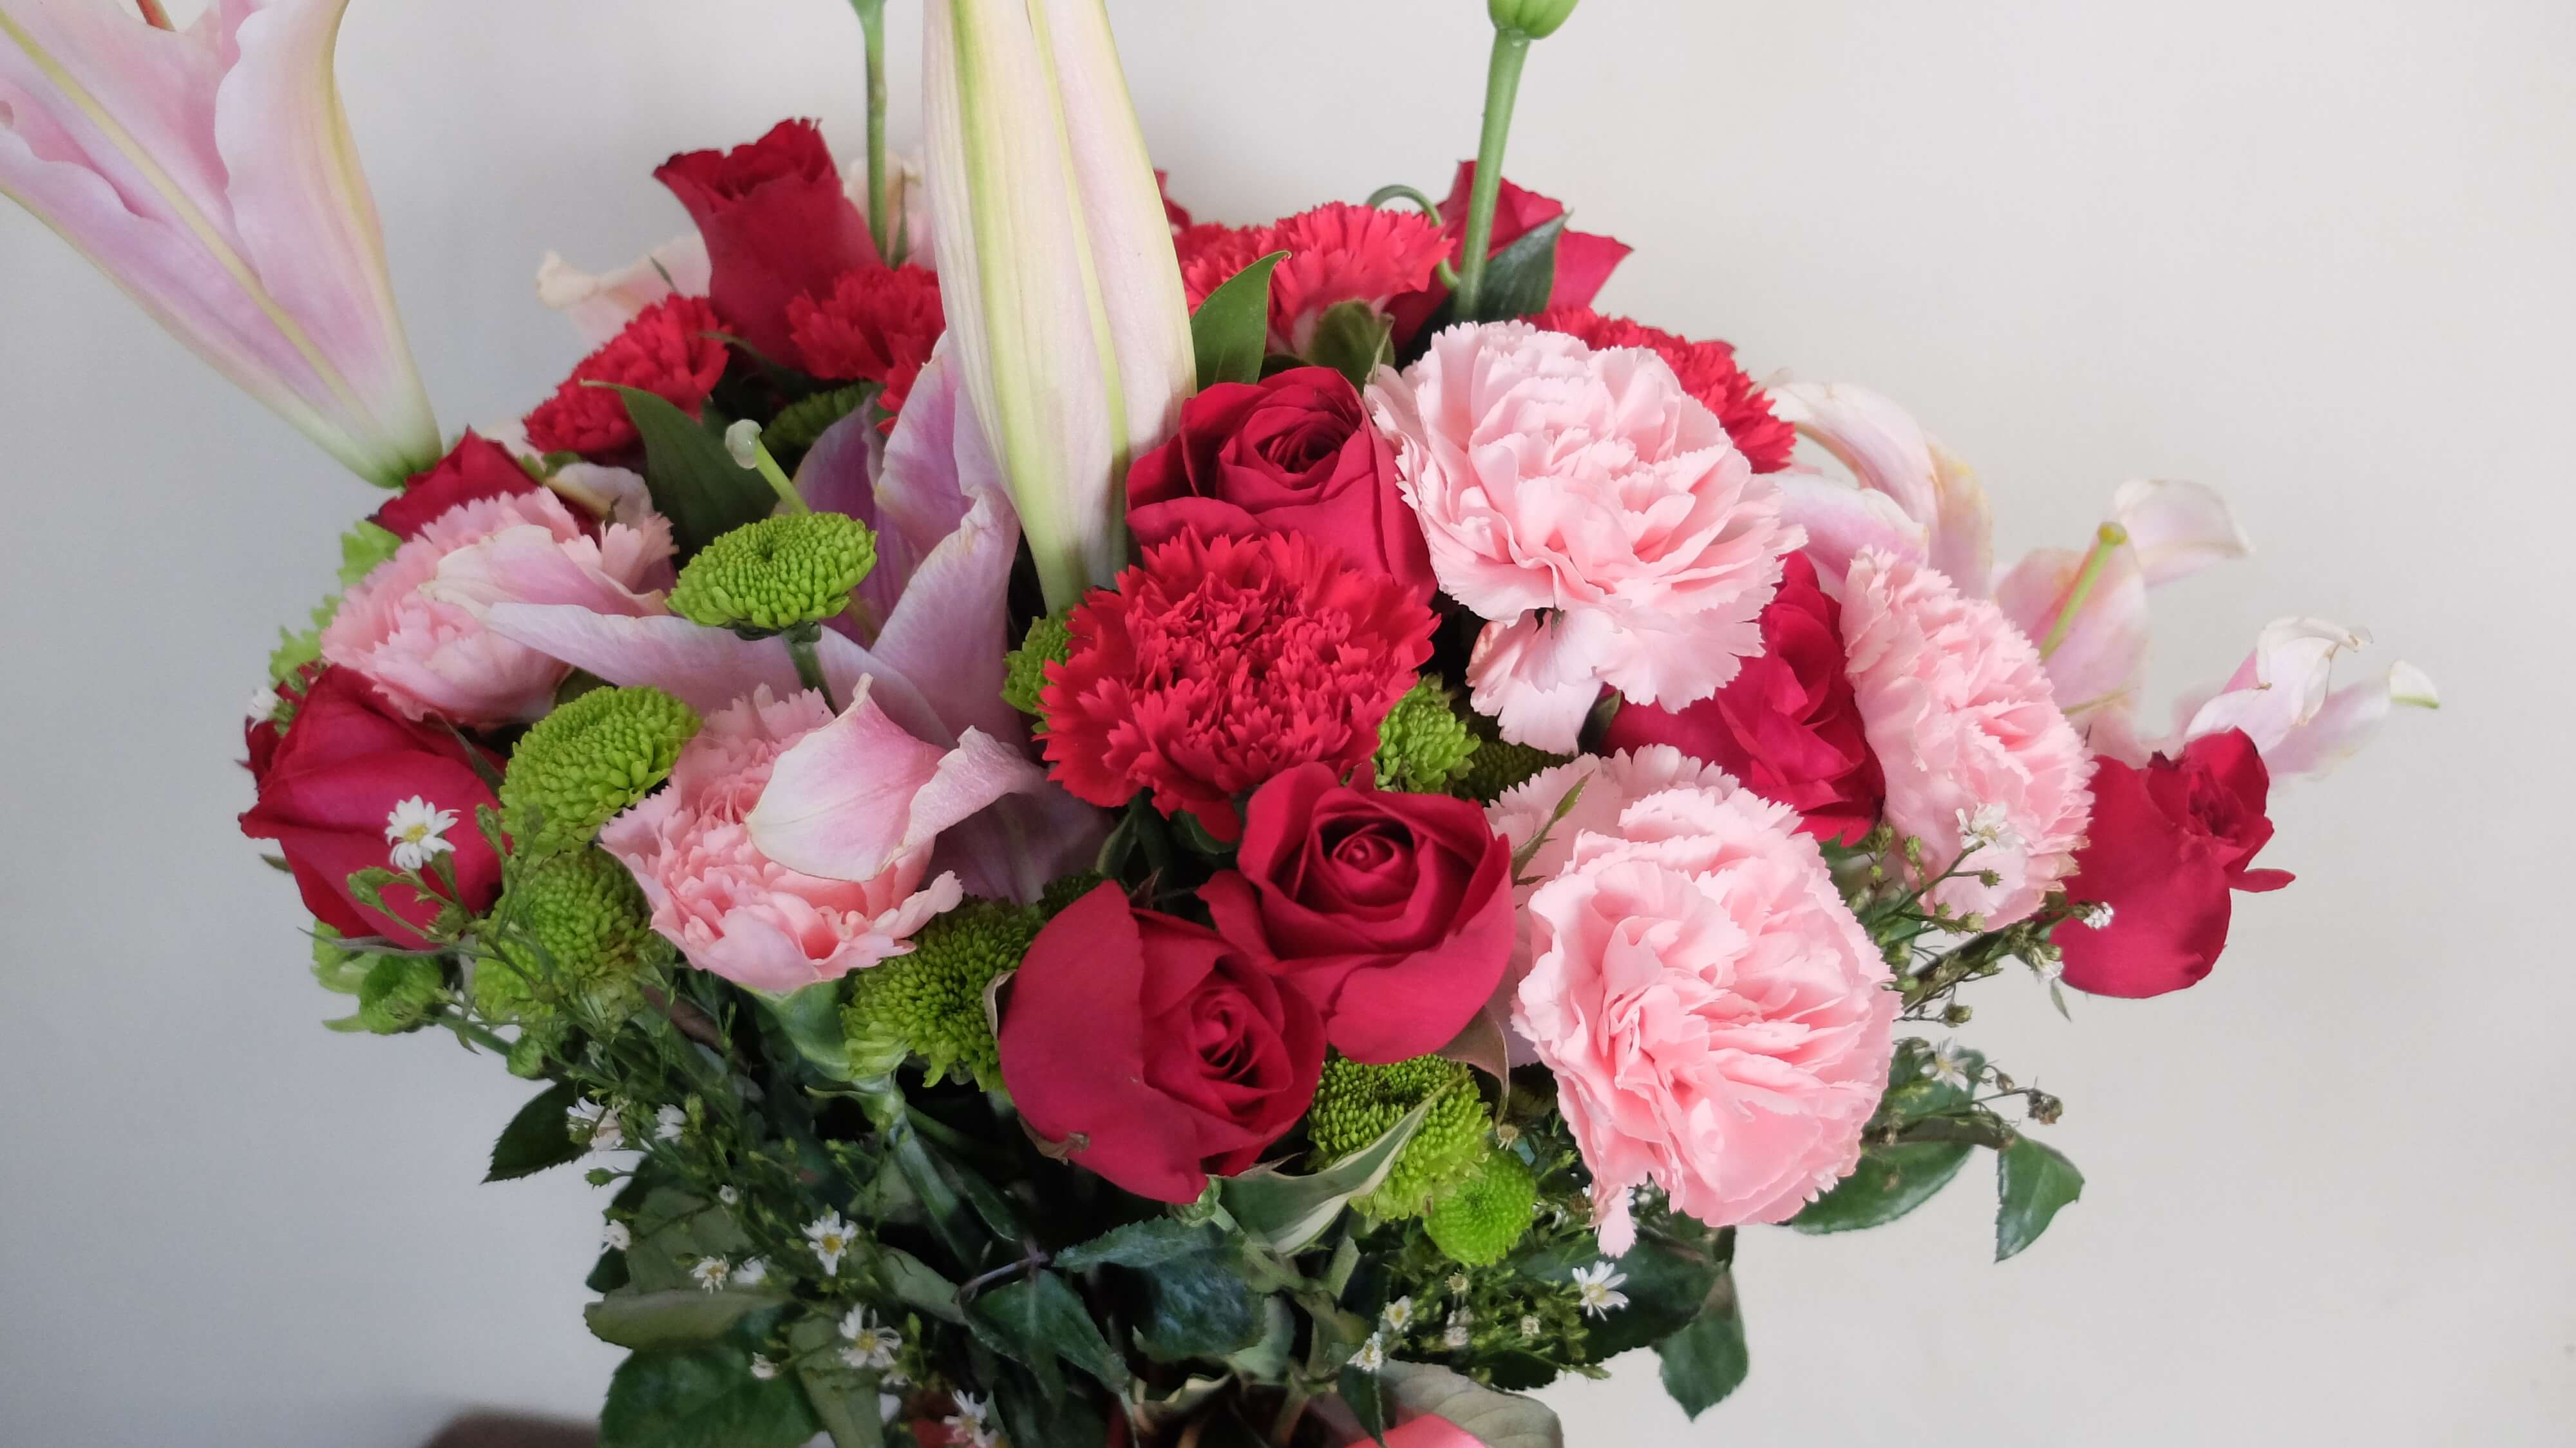 Online Flower Delivery In The Philippines Flower Chimp Gretas